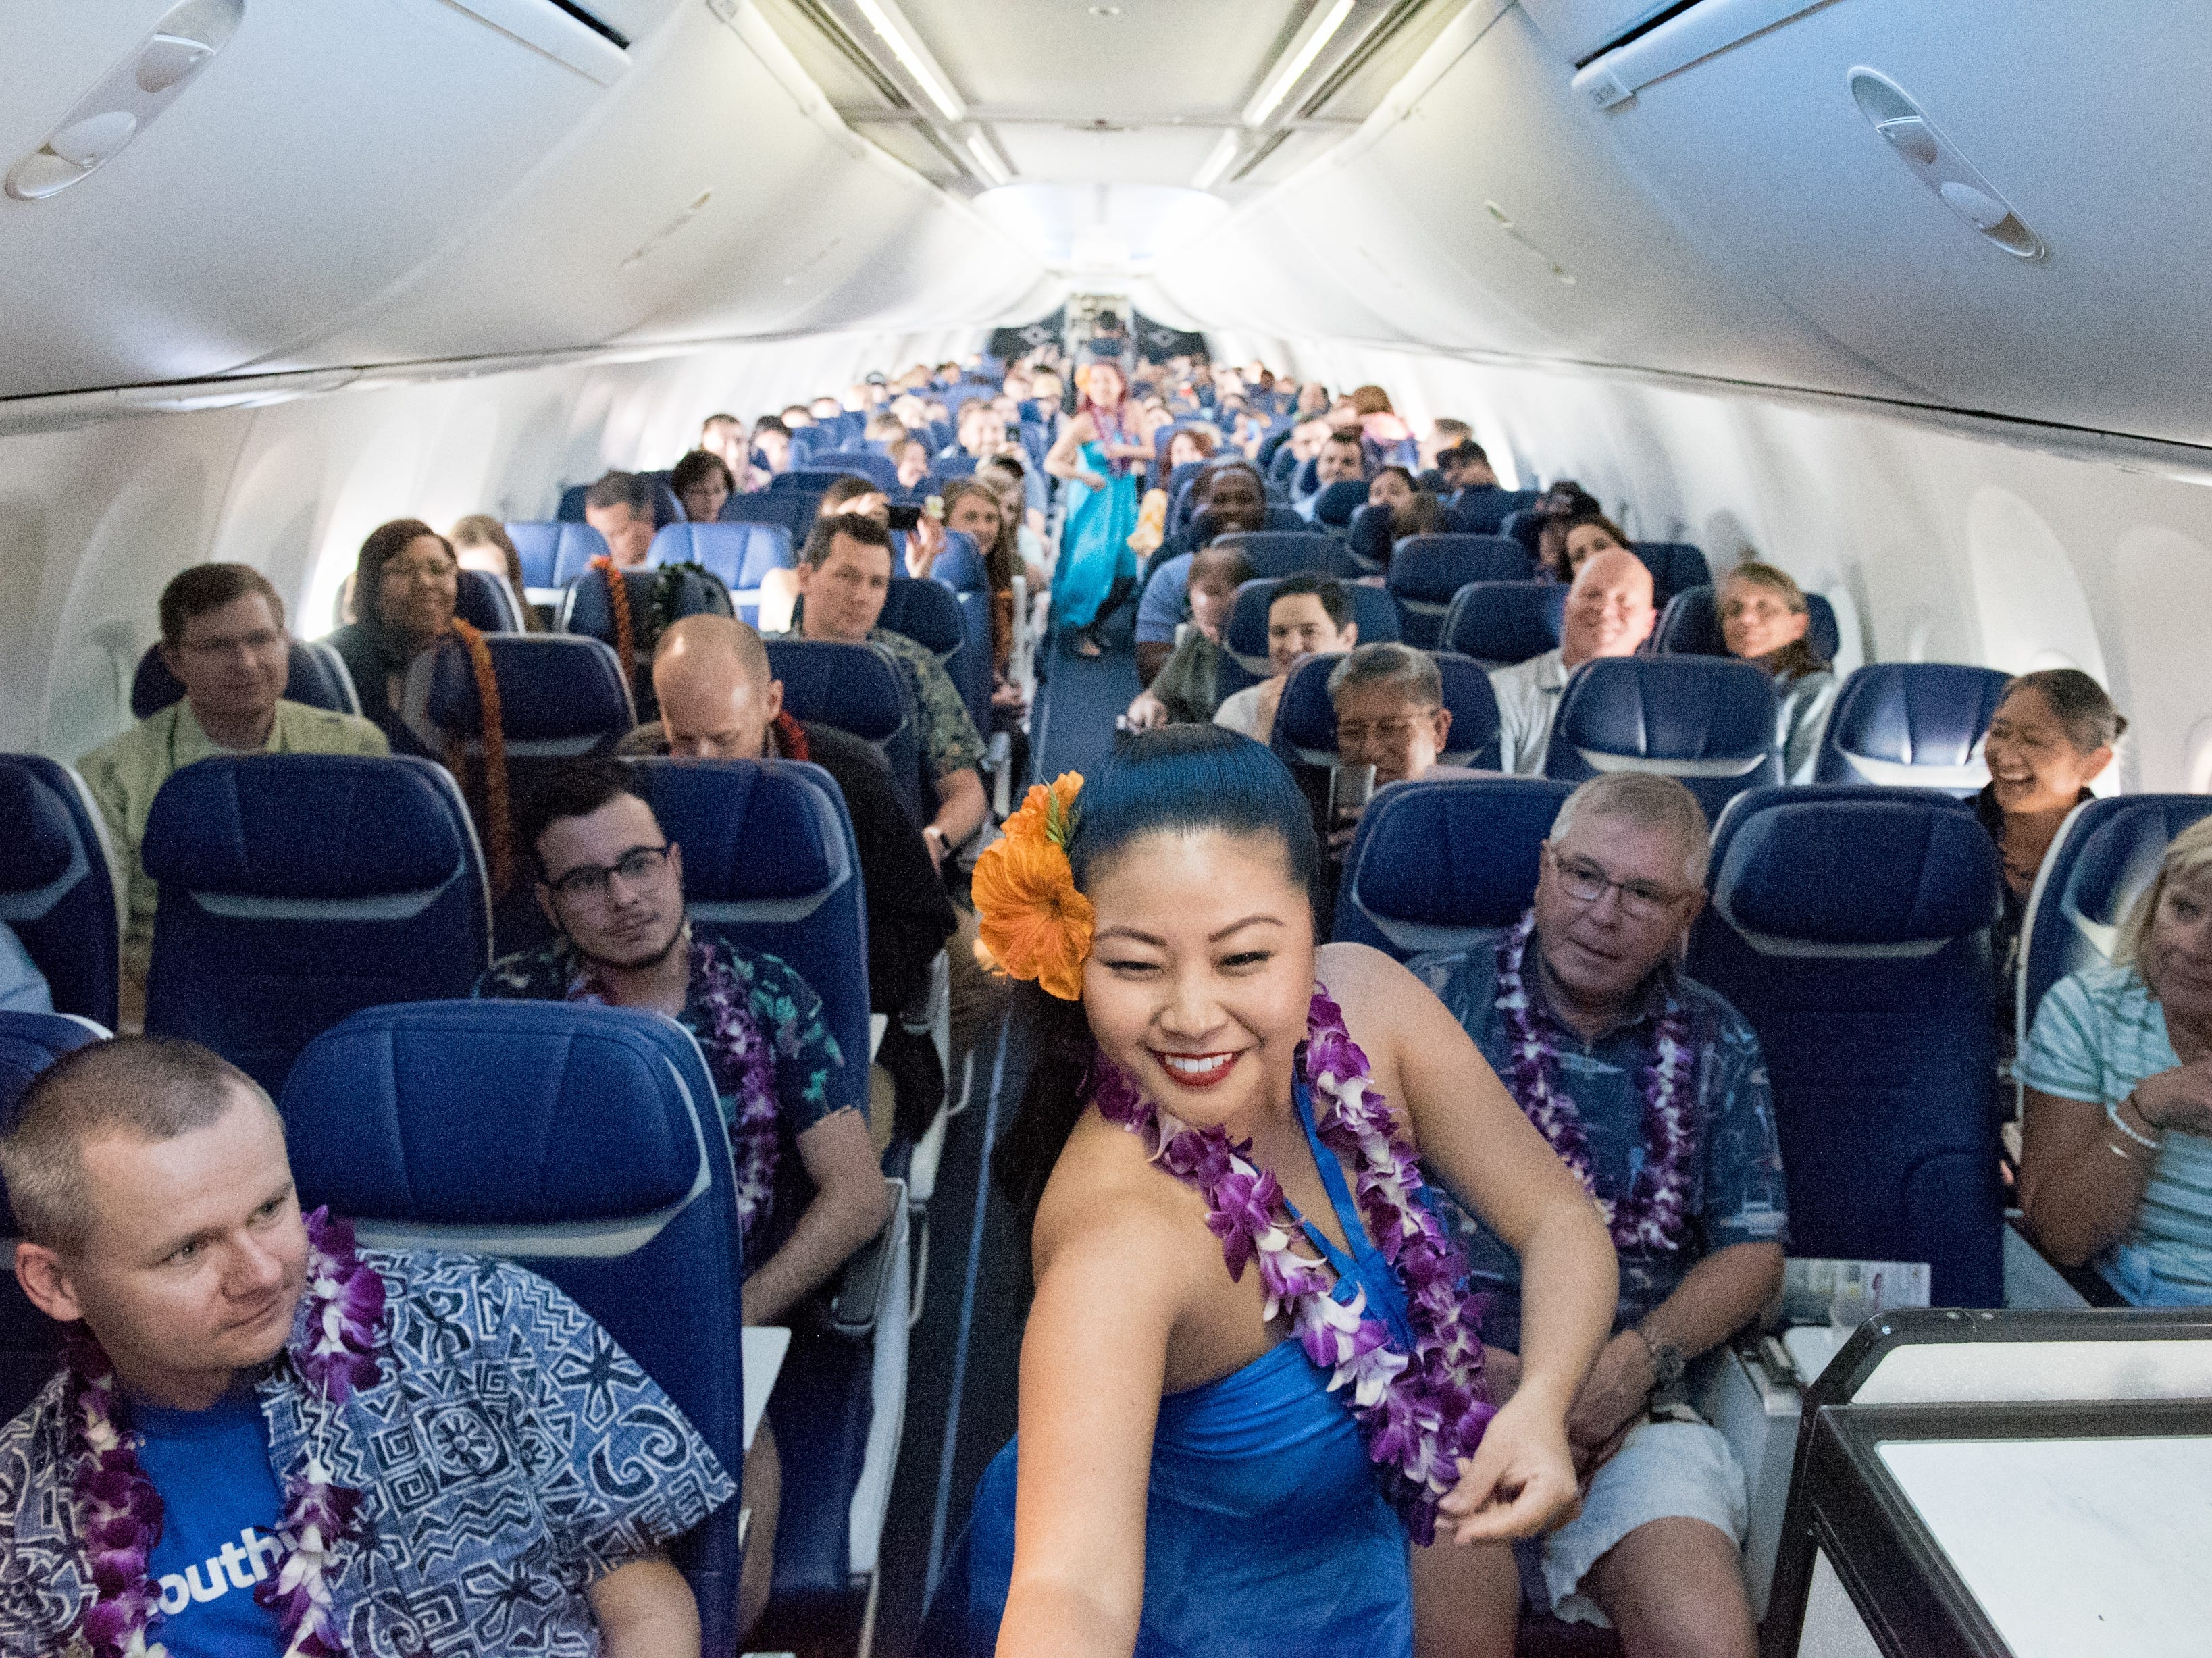 Southwest Airlines debuted their inaugural flight to Hawaii from Oakland to Honolulu in March.